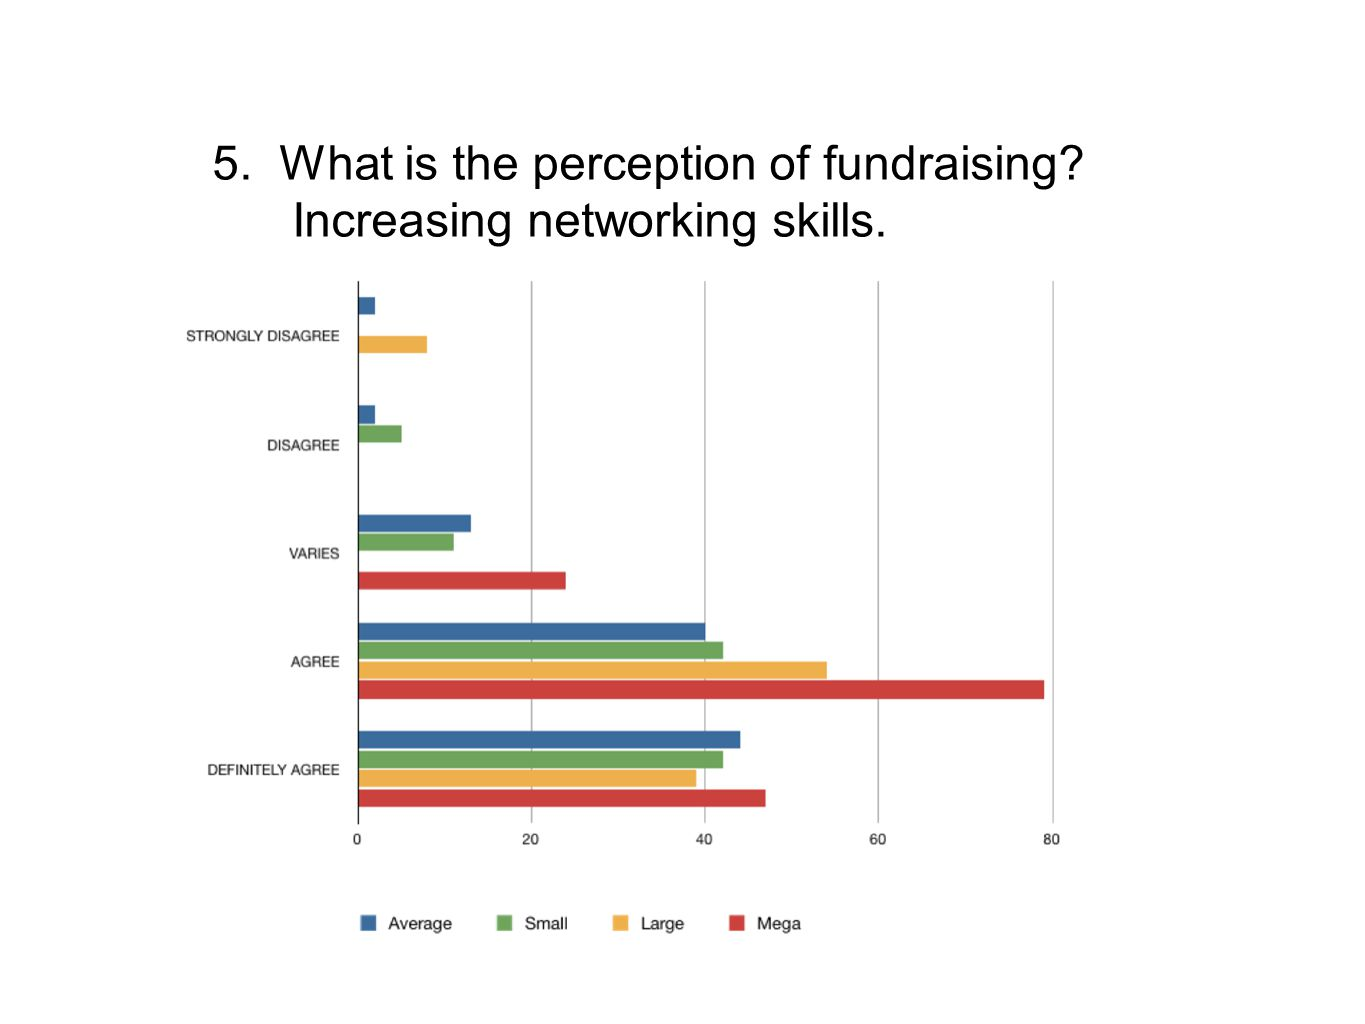 5. What is the perception of fundraising? Increasing networking skills.